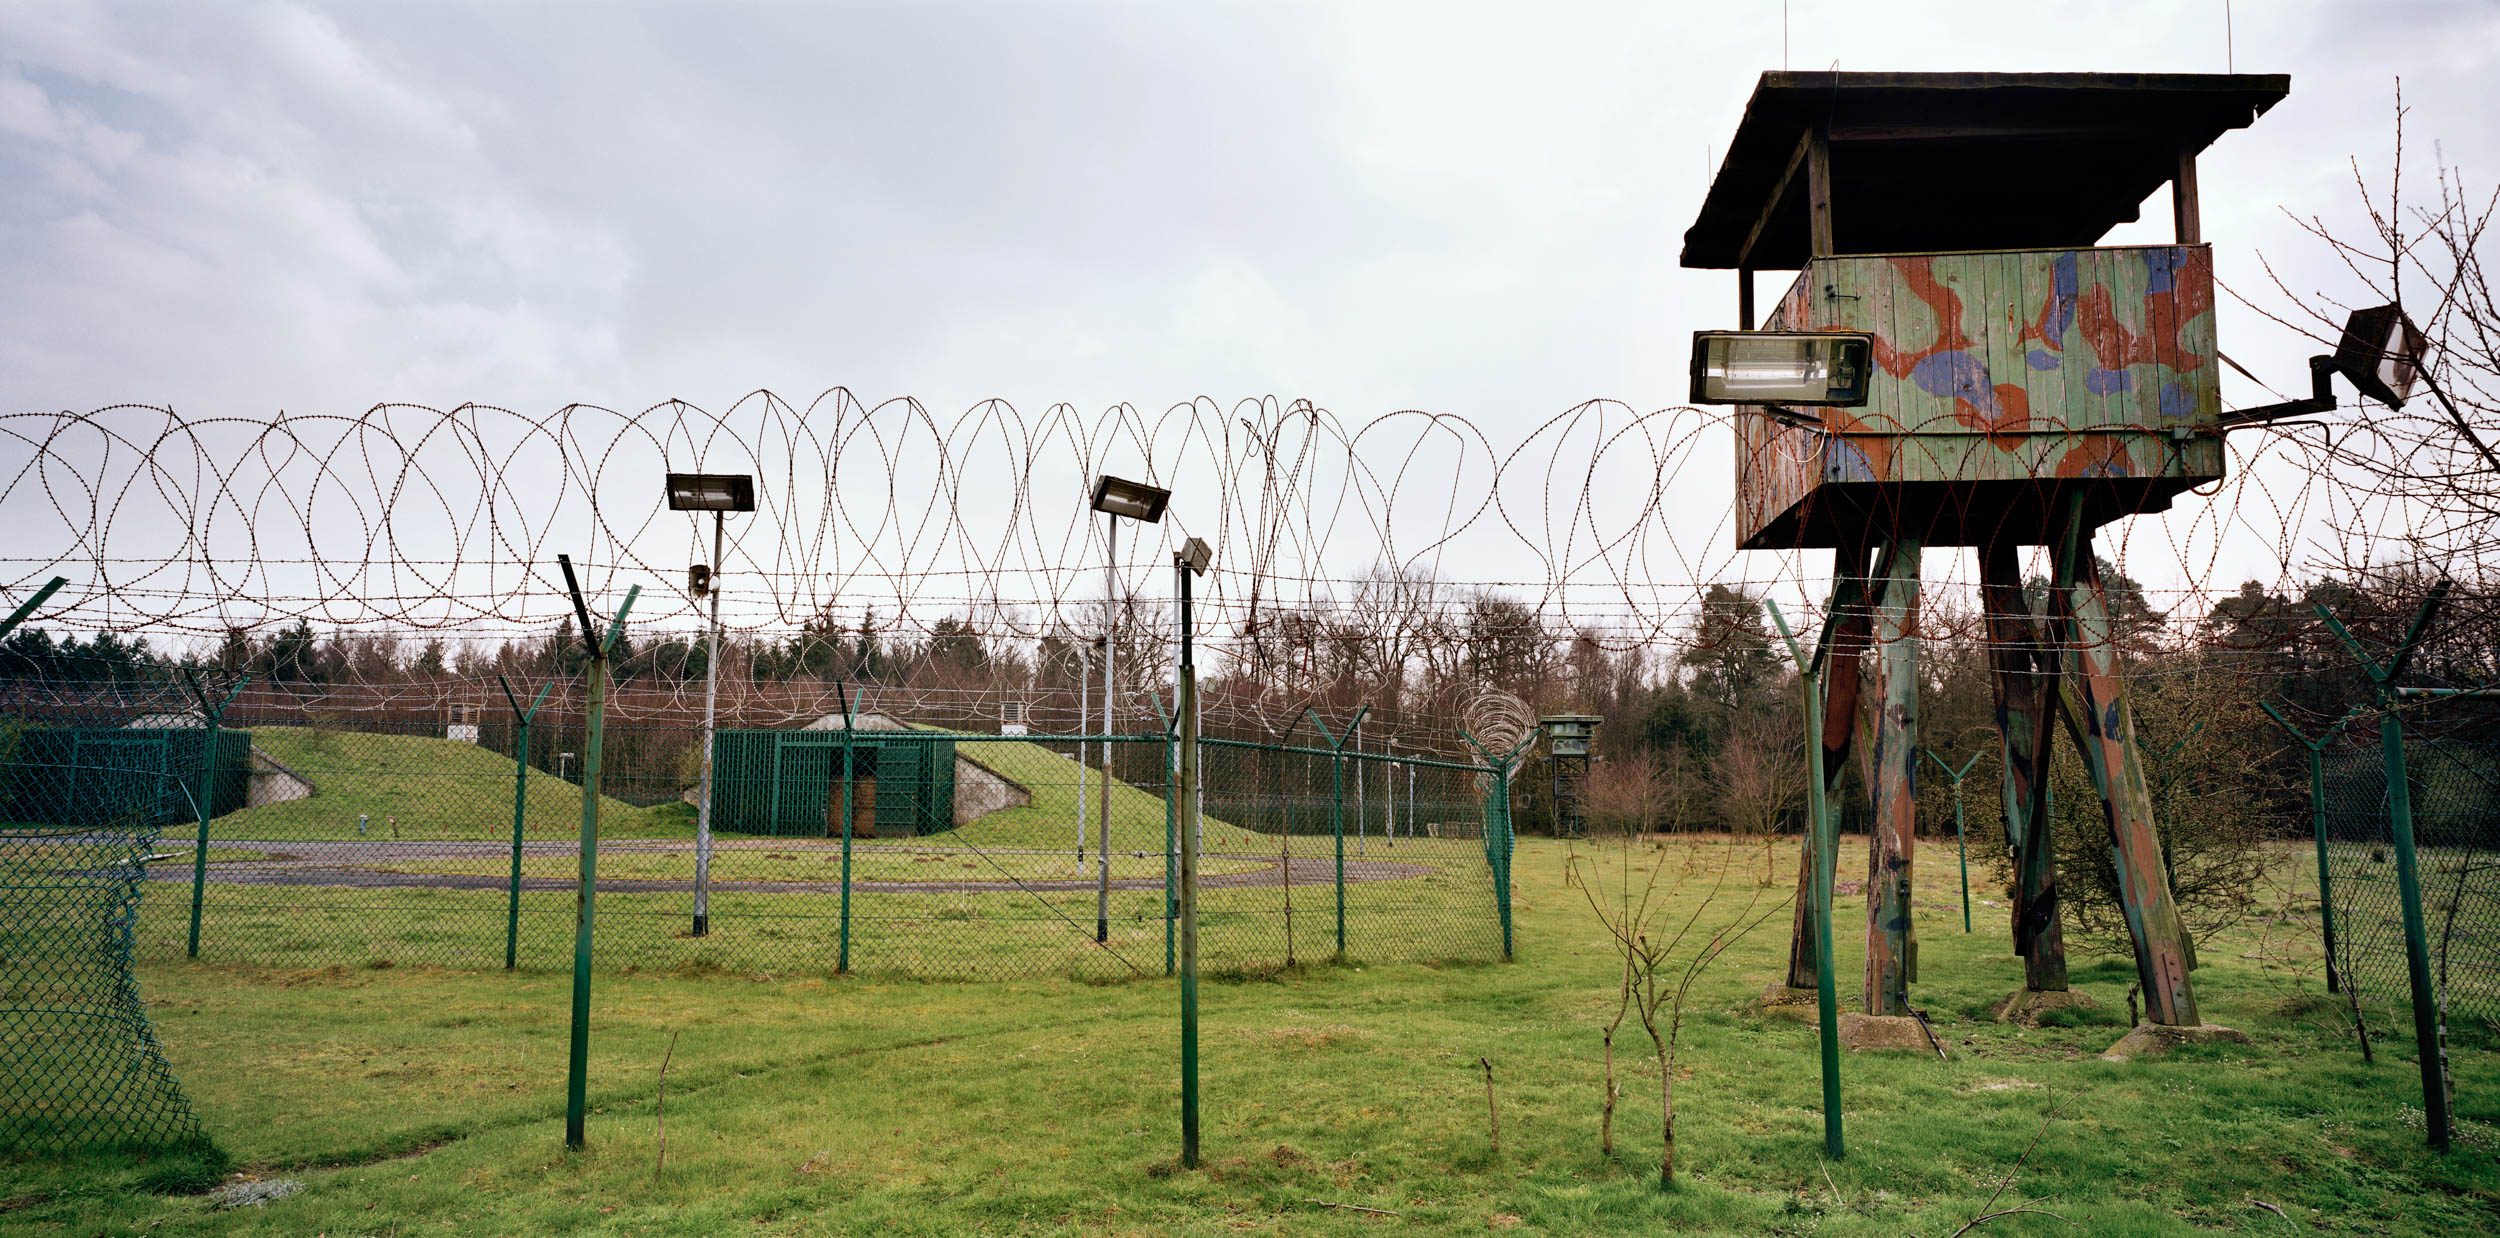 Germany. American storage depot for nuclear weapons